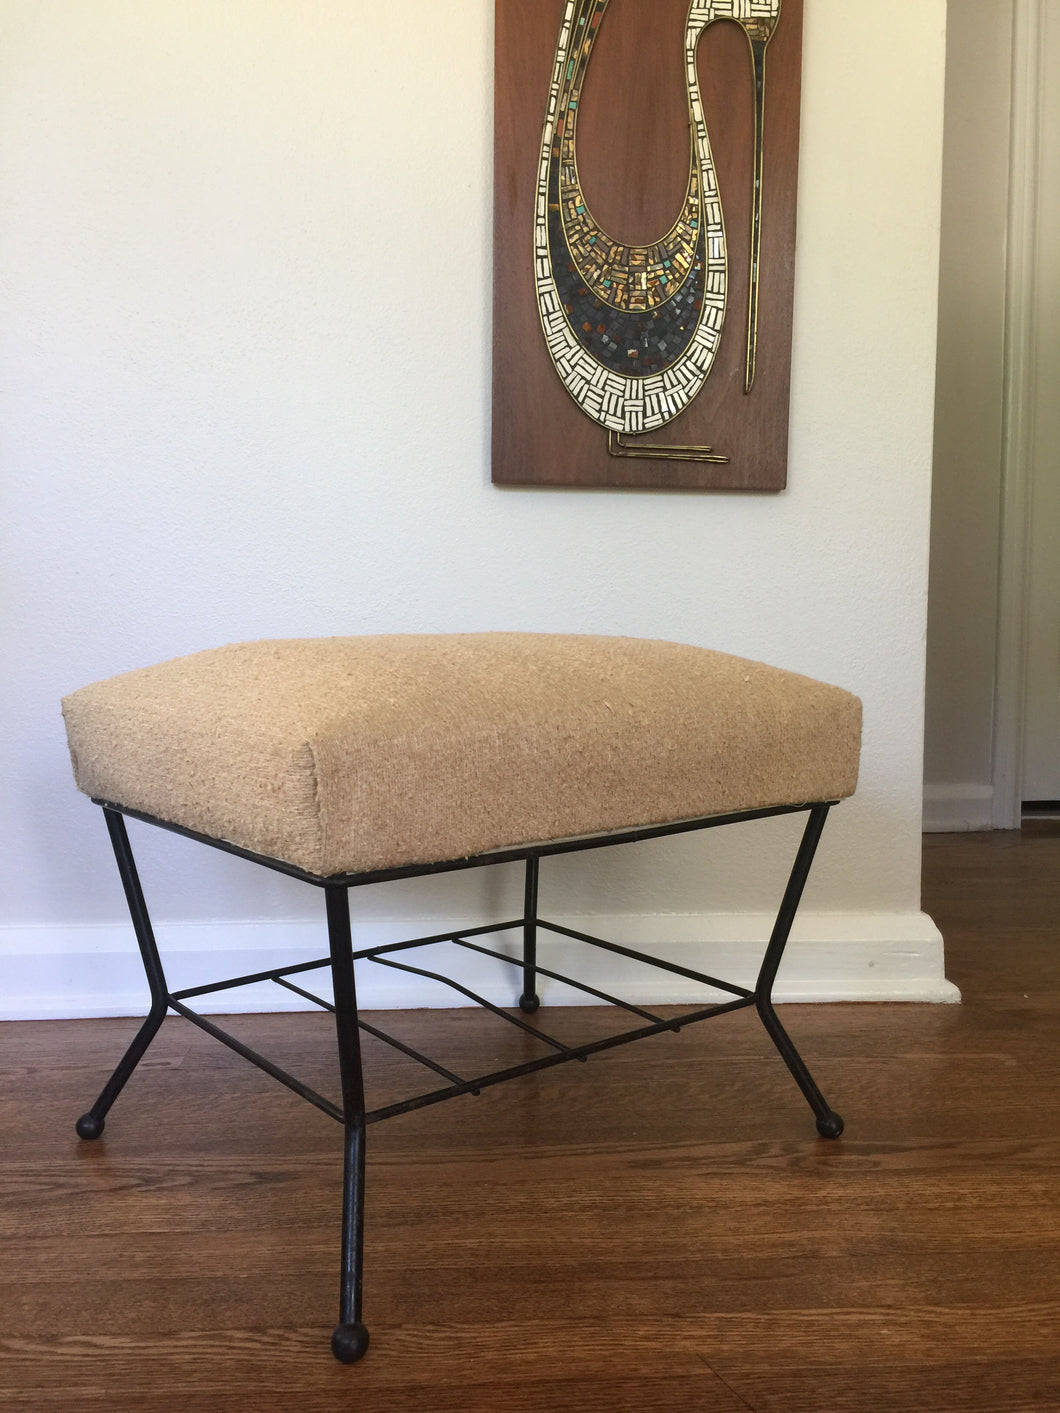 Vintage Mid Century Modern Ottoman Foot Stool With Black Metal Base And Linen Color Upholstery